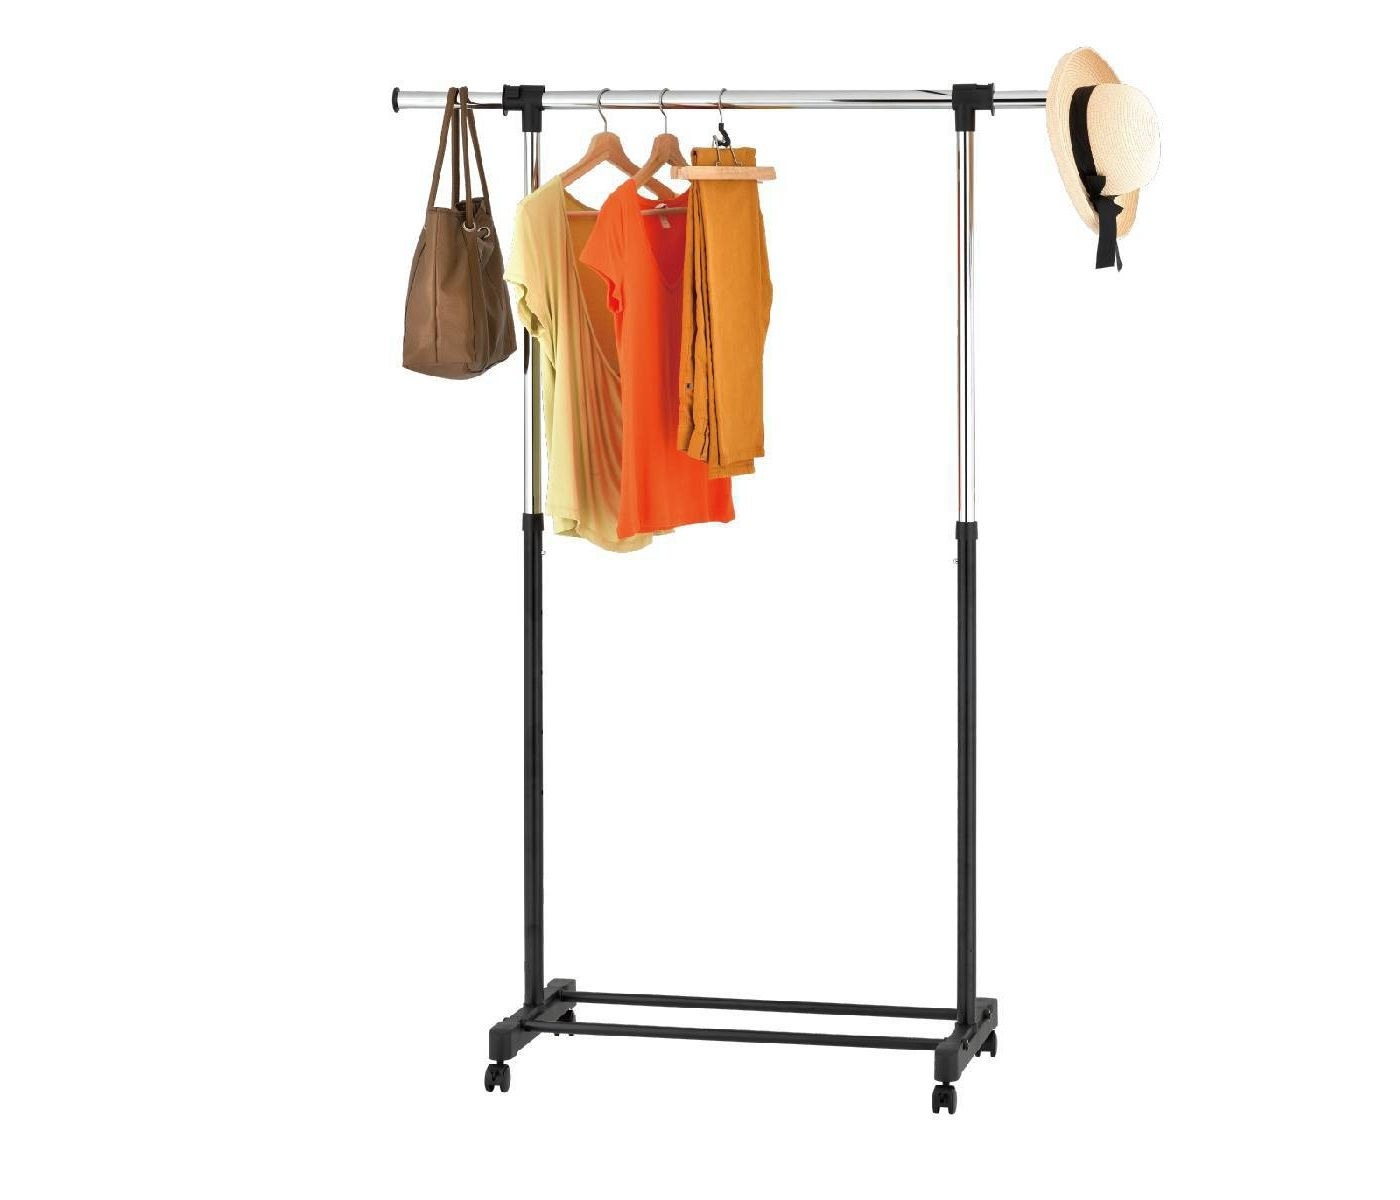 A single rod black garment rack with warm colored clothing on it